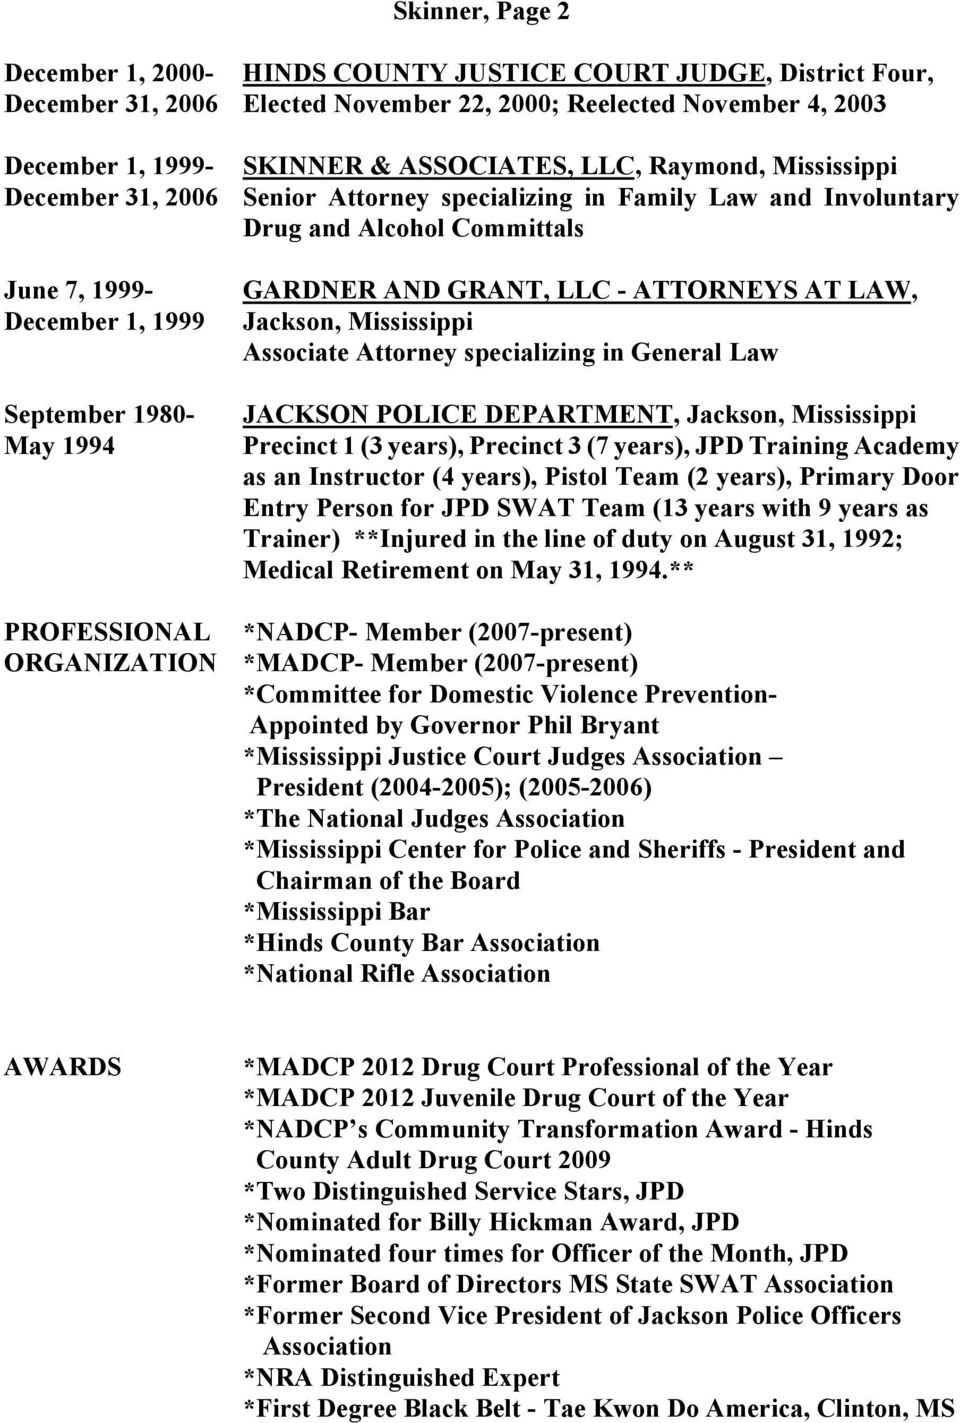 GRANT, LLC - ATTORNEYS AT LAW, Jackson, Mississippi Associate Attorney specializing in General Law JACKSON POLICE DEPARTMENT, Jackson, Mississippi Precinct 1 (3 years), Precinct 3 (7 years), JPD